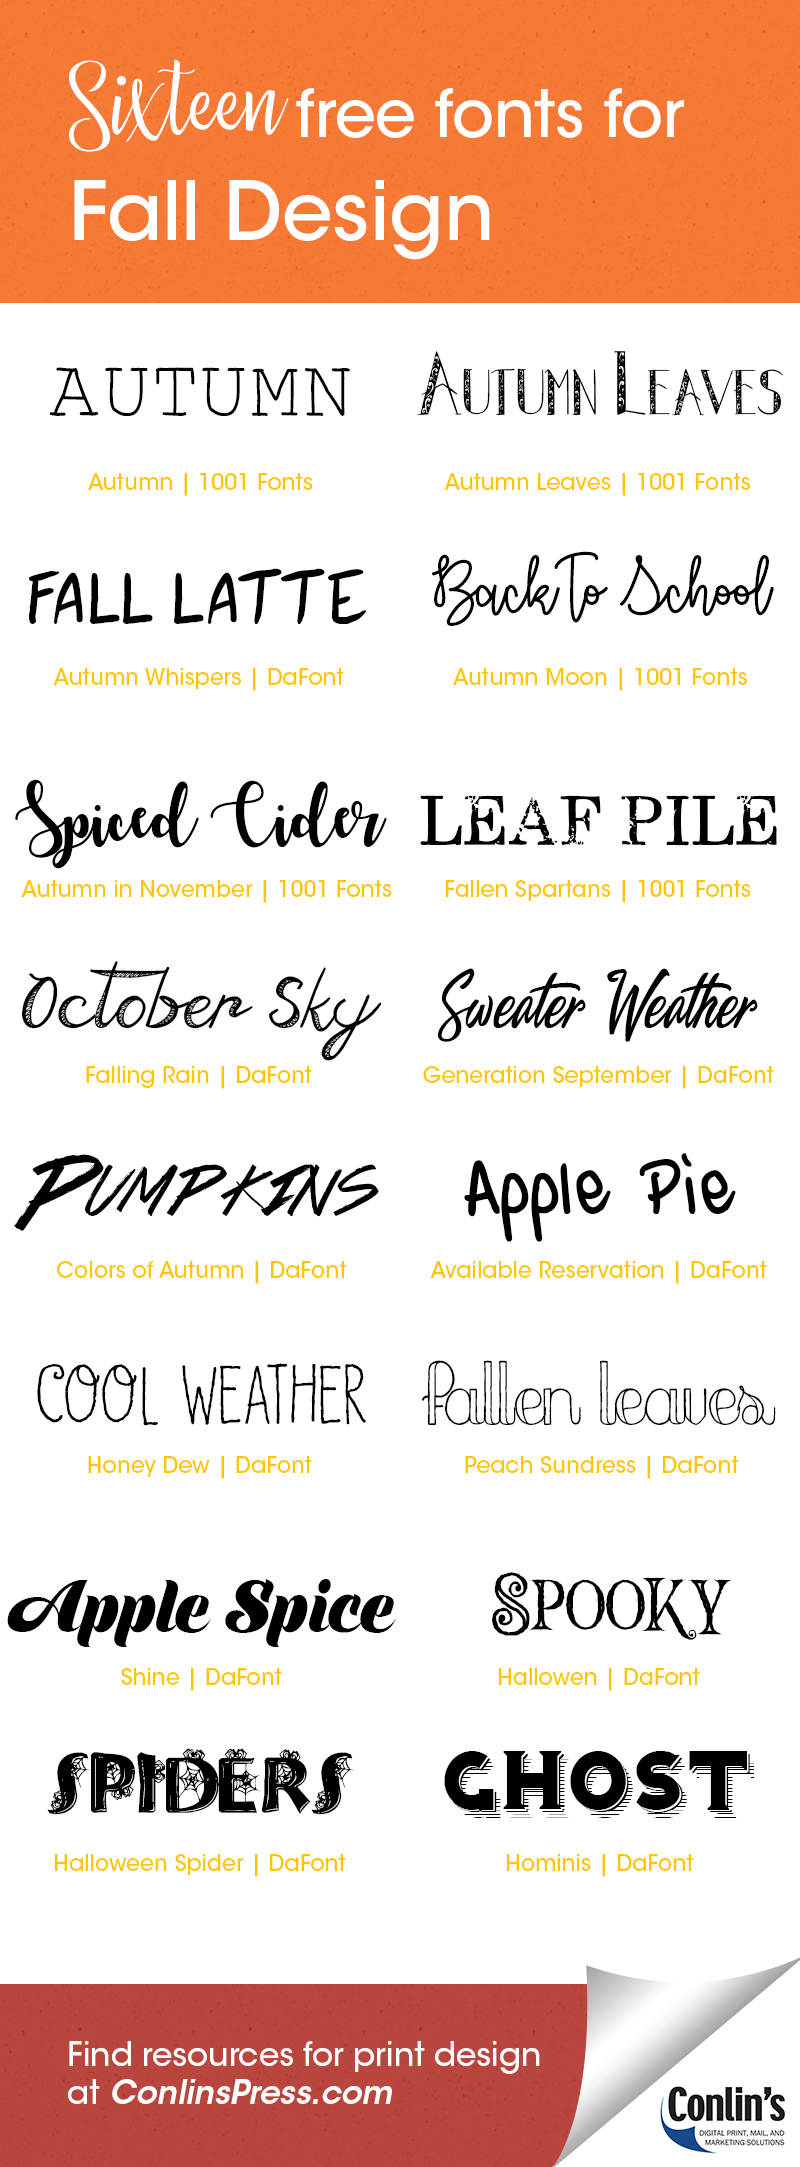 16 Free Fonts for Fall Design |